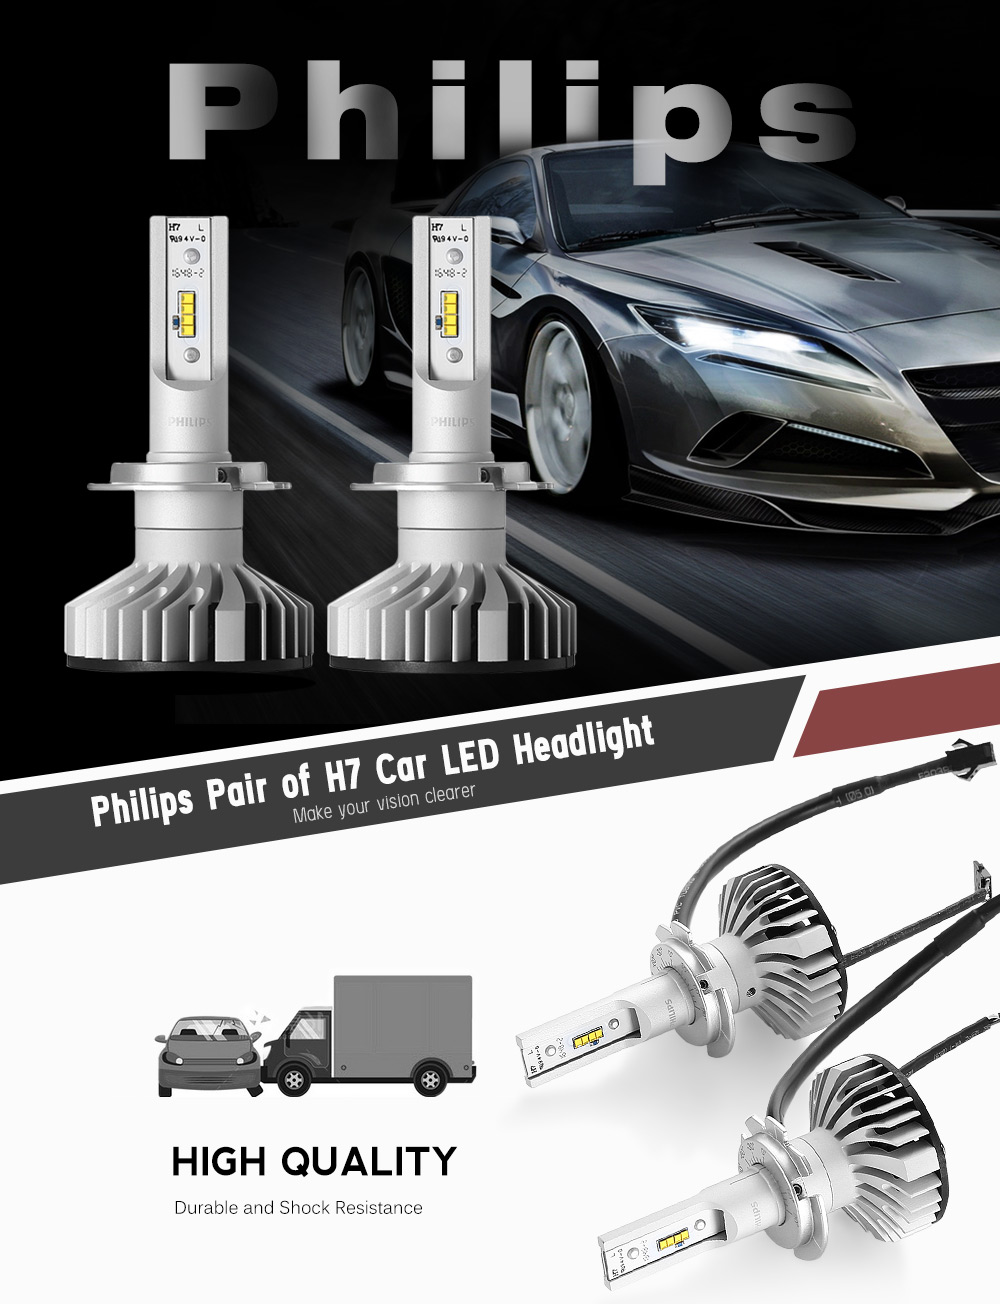 philips pair of h7 car led headlight online. Black Bedroom Furniture Sets. Home Design Ideas